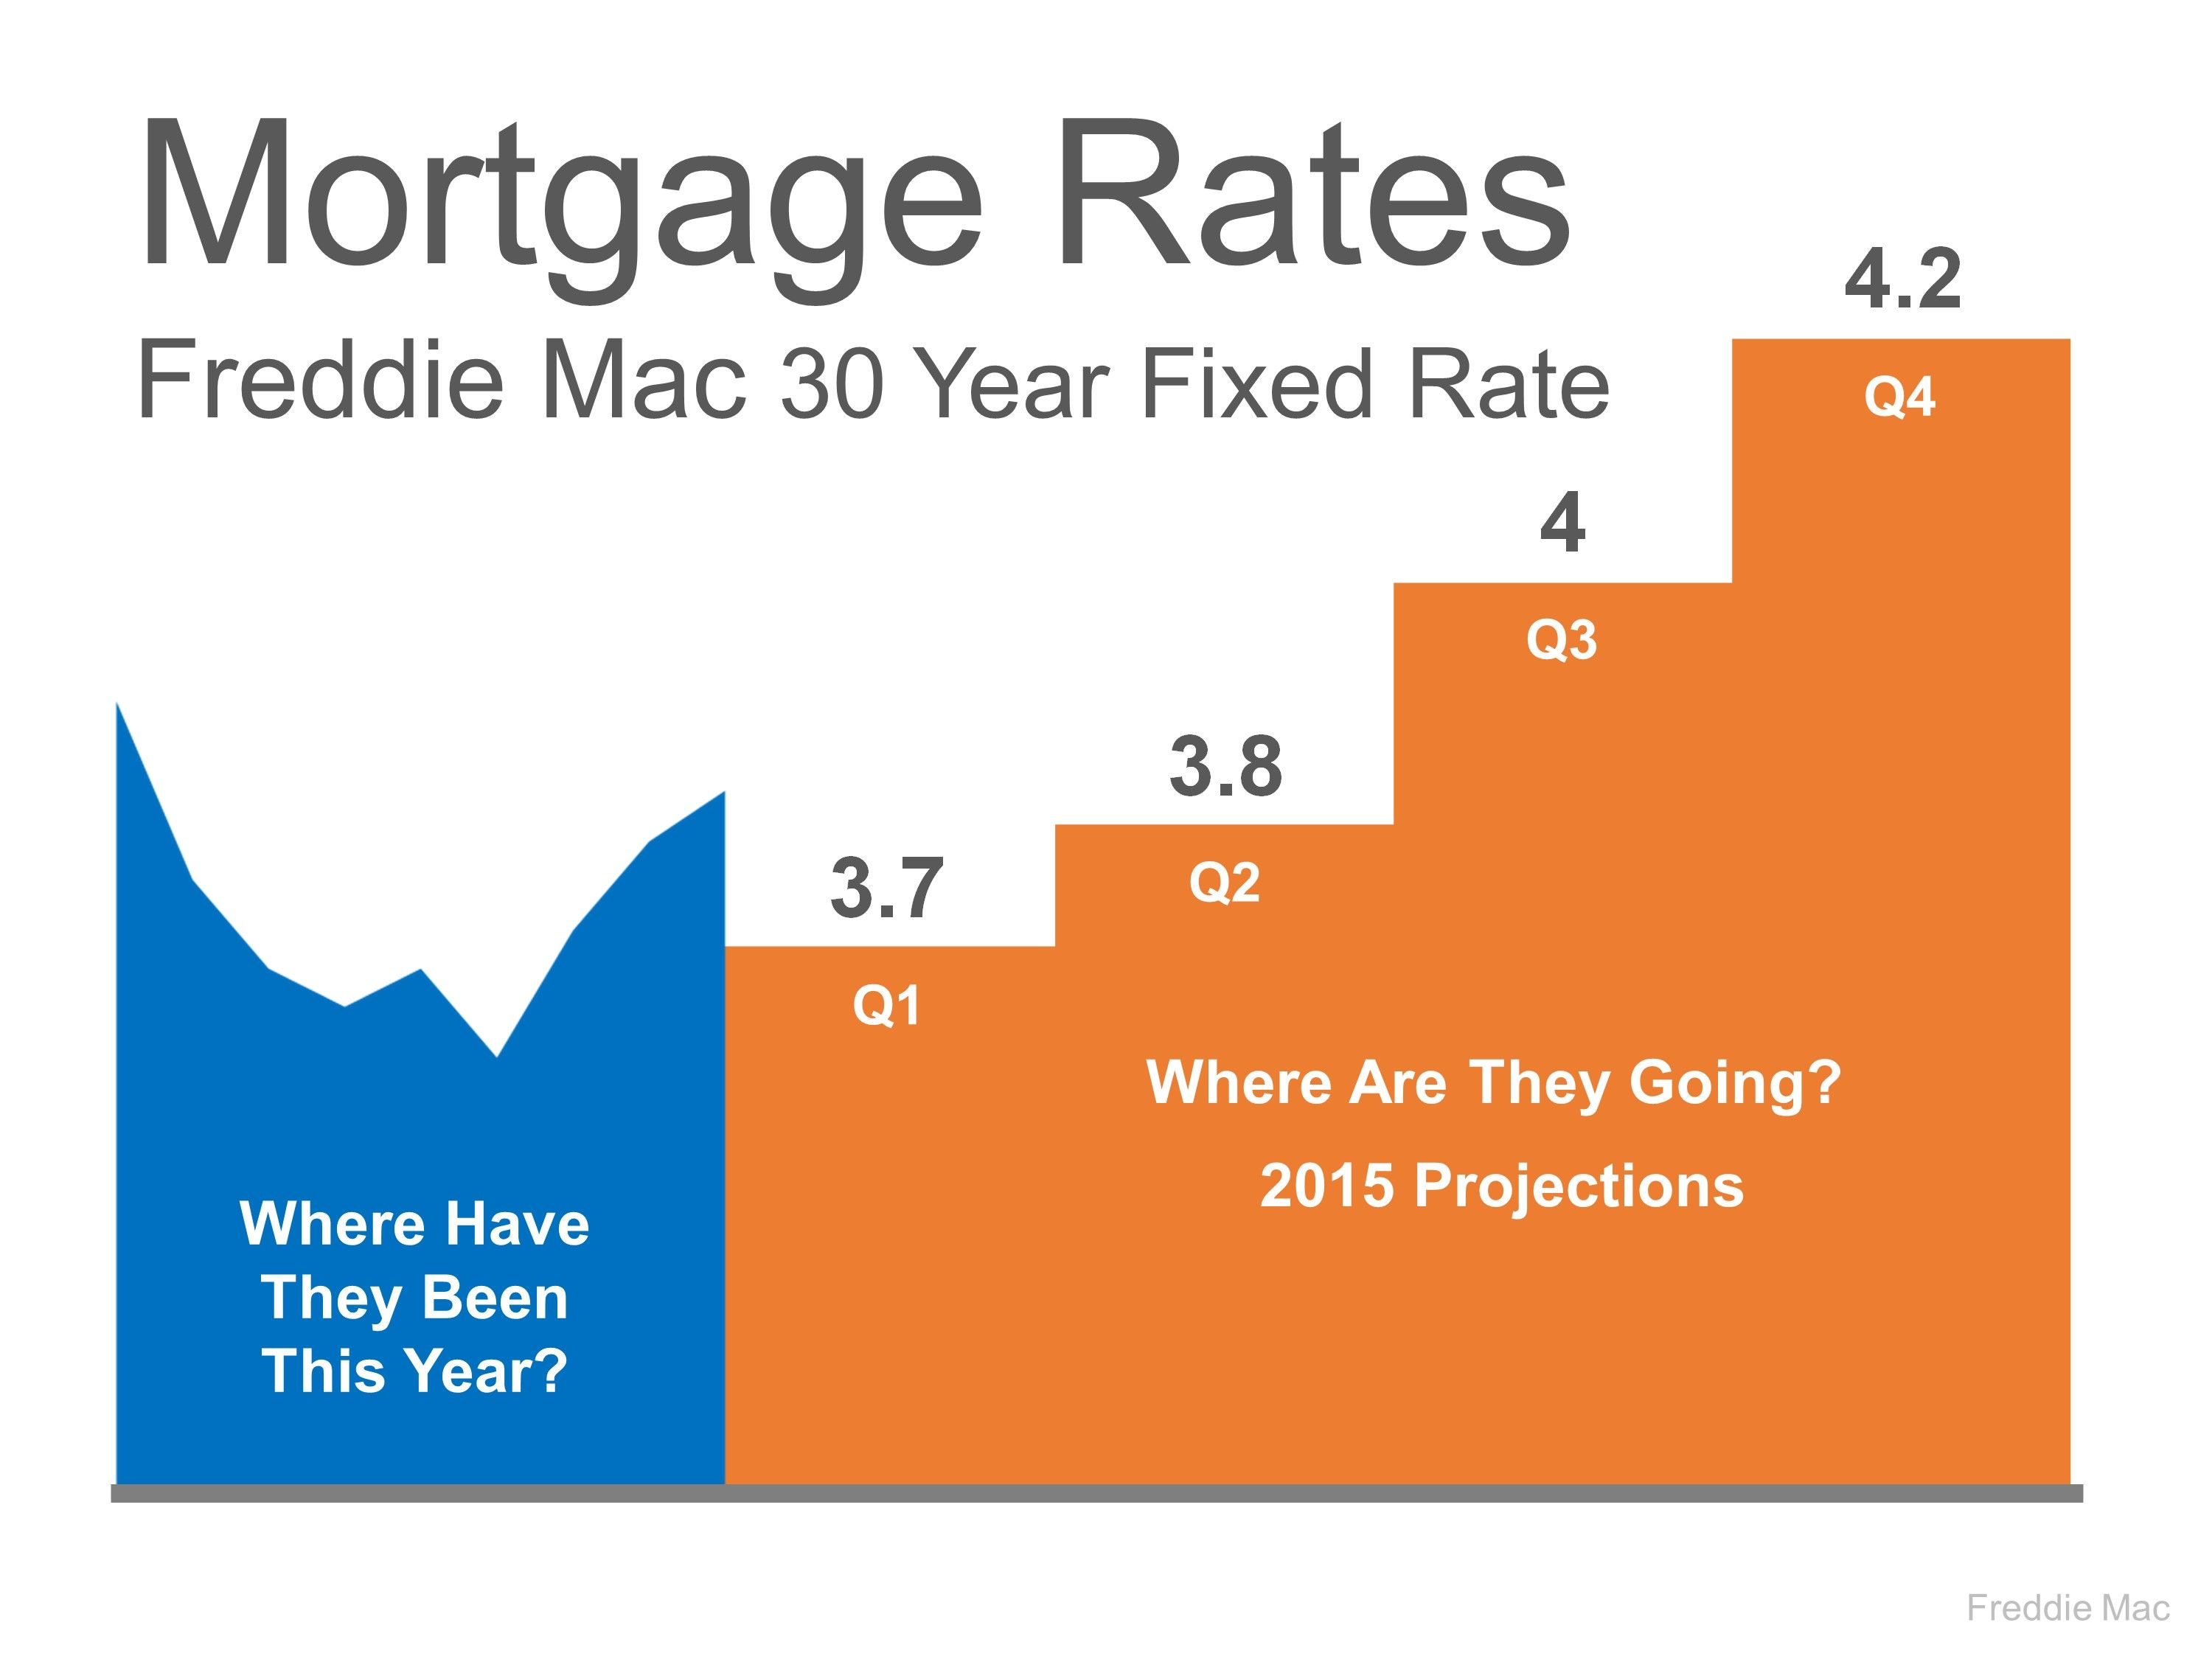 Mortgage Rates Freddie Mac 30 Year Fixed Rate Loveyourhome Realestate Marketreportmarch2015 Mortgage Rates Marketing Real Estate Marketing